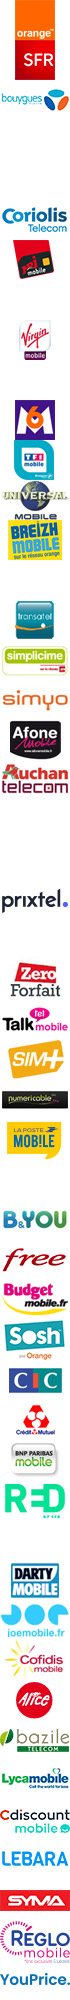 Forfait NRJ Mobile WOOT illimit� 5Go sans mobile sans engagement